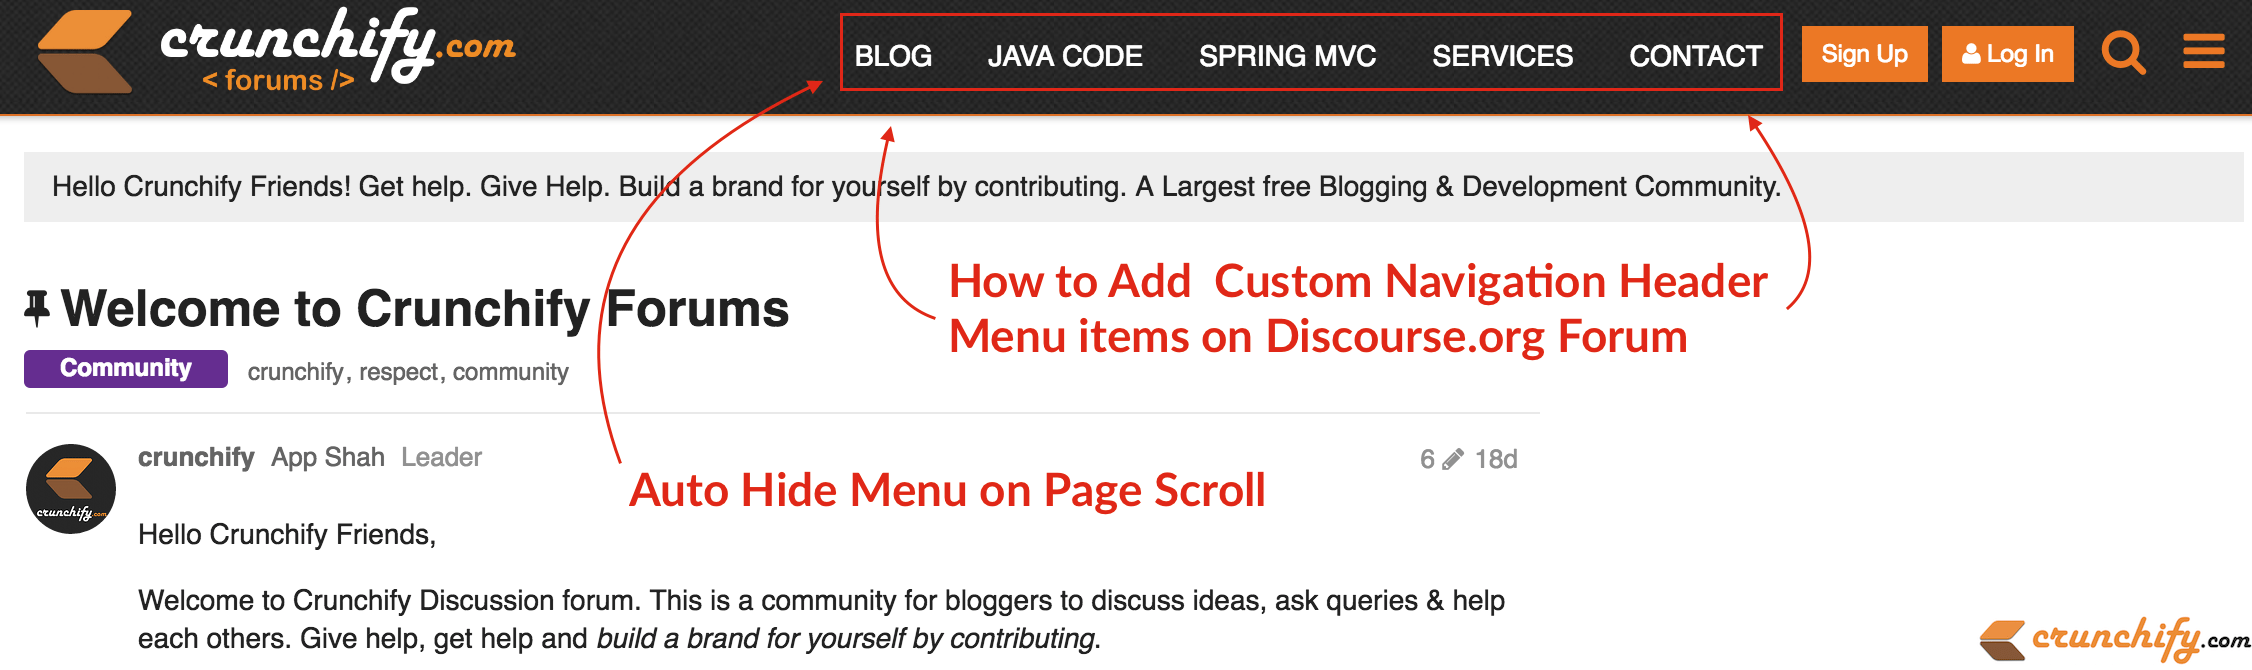 How to Add and Auto Hide Custom Navigation Header Menu items